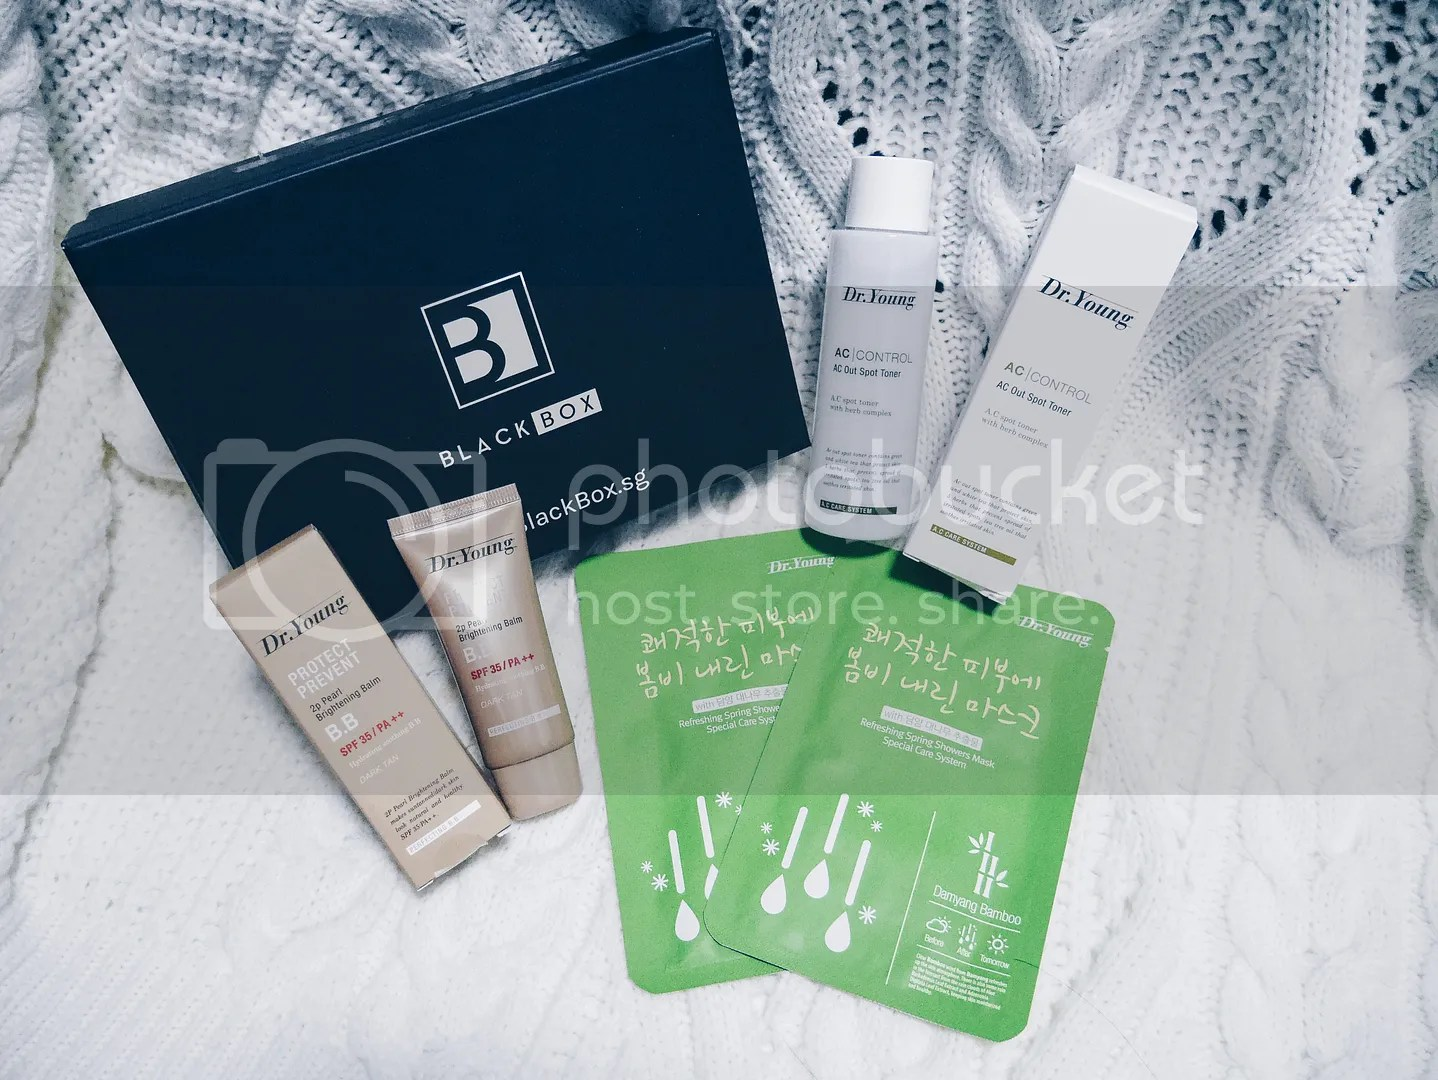 Dr Young Skincare BlackBox SG 2